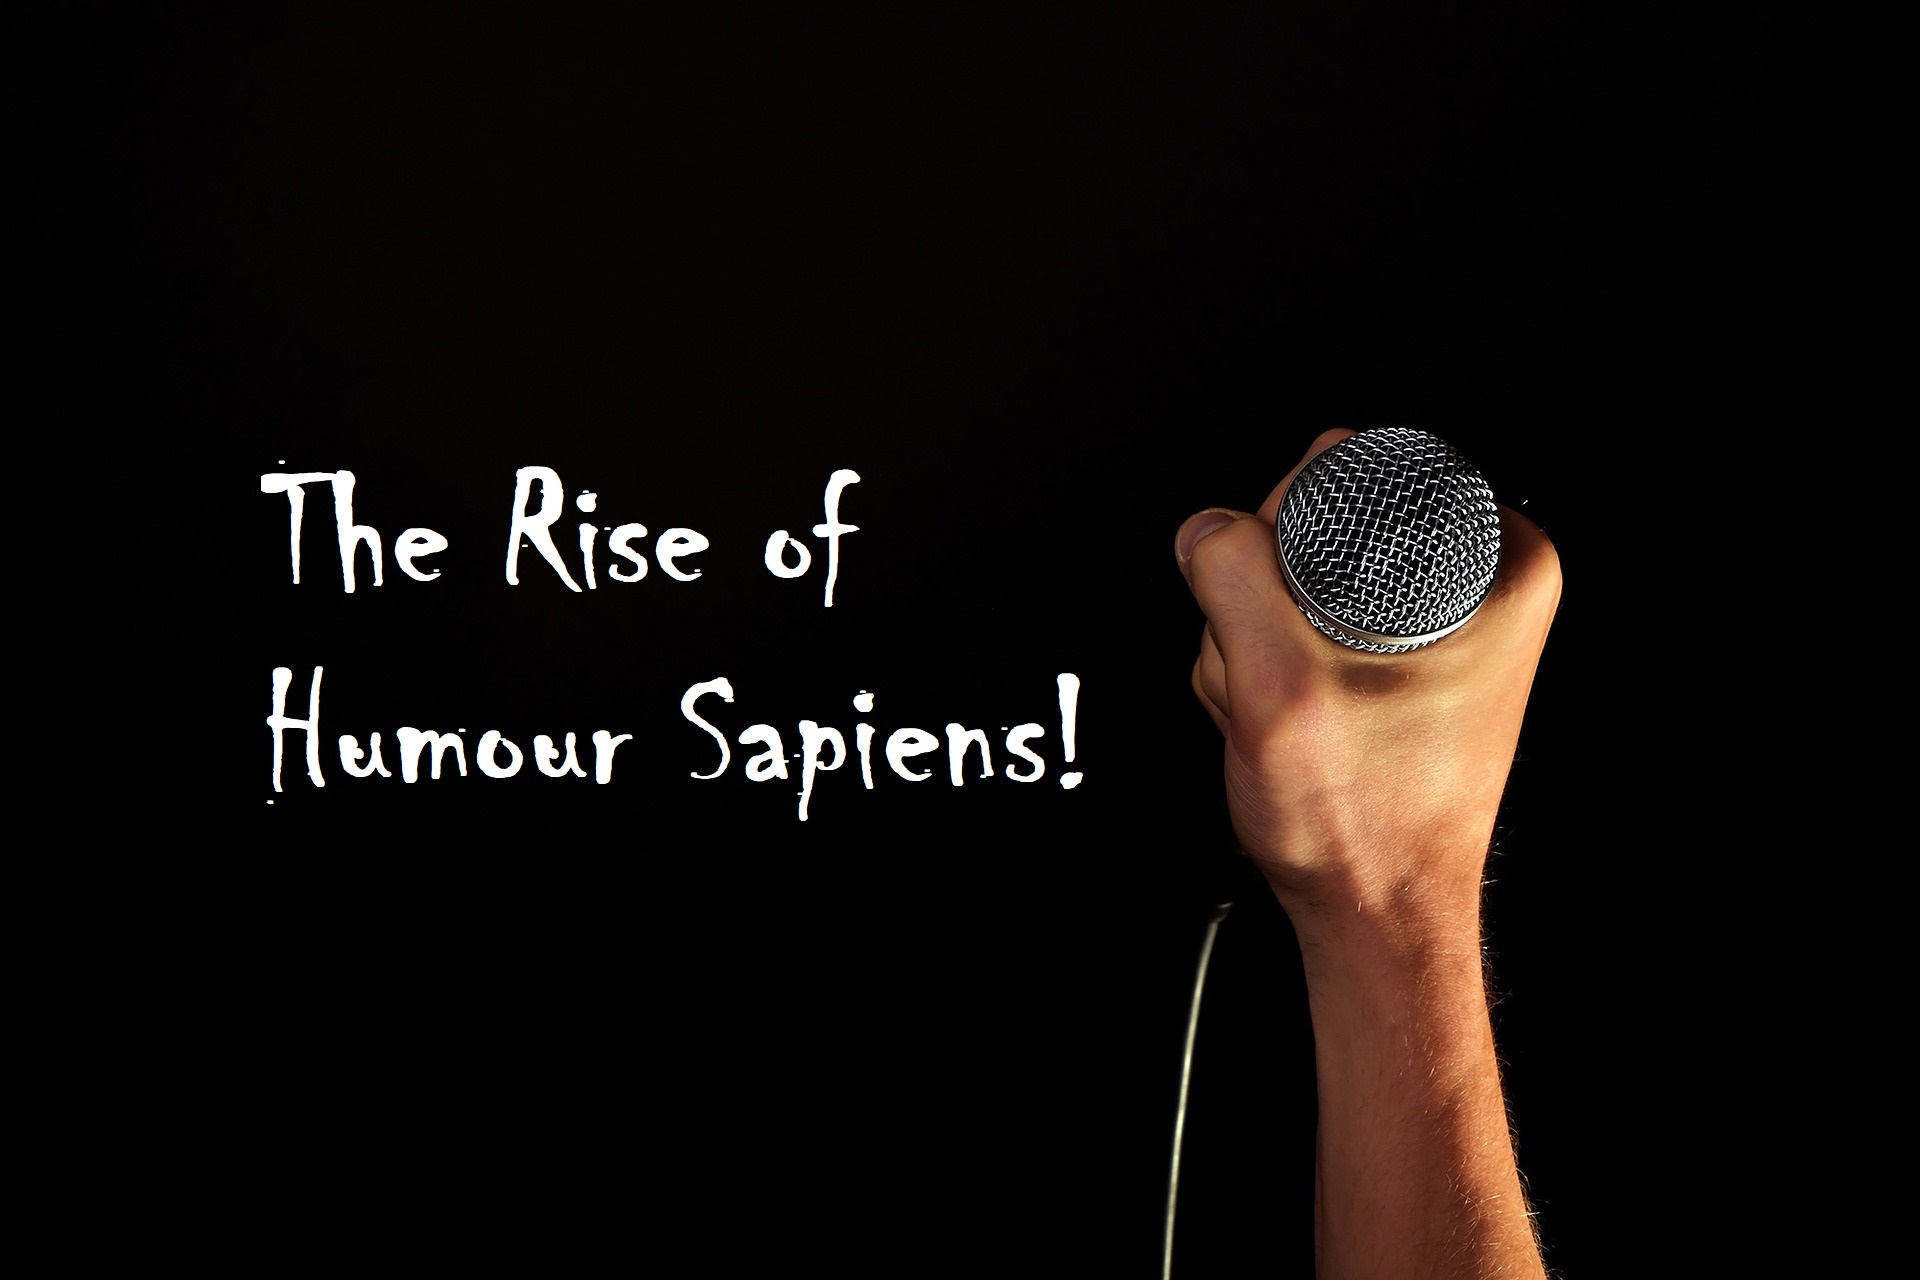 the rise of humour sapiens- comedian